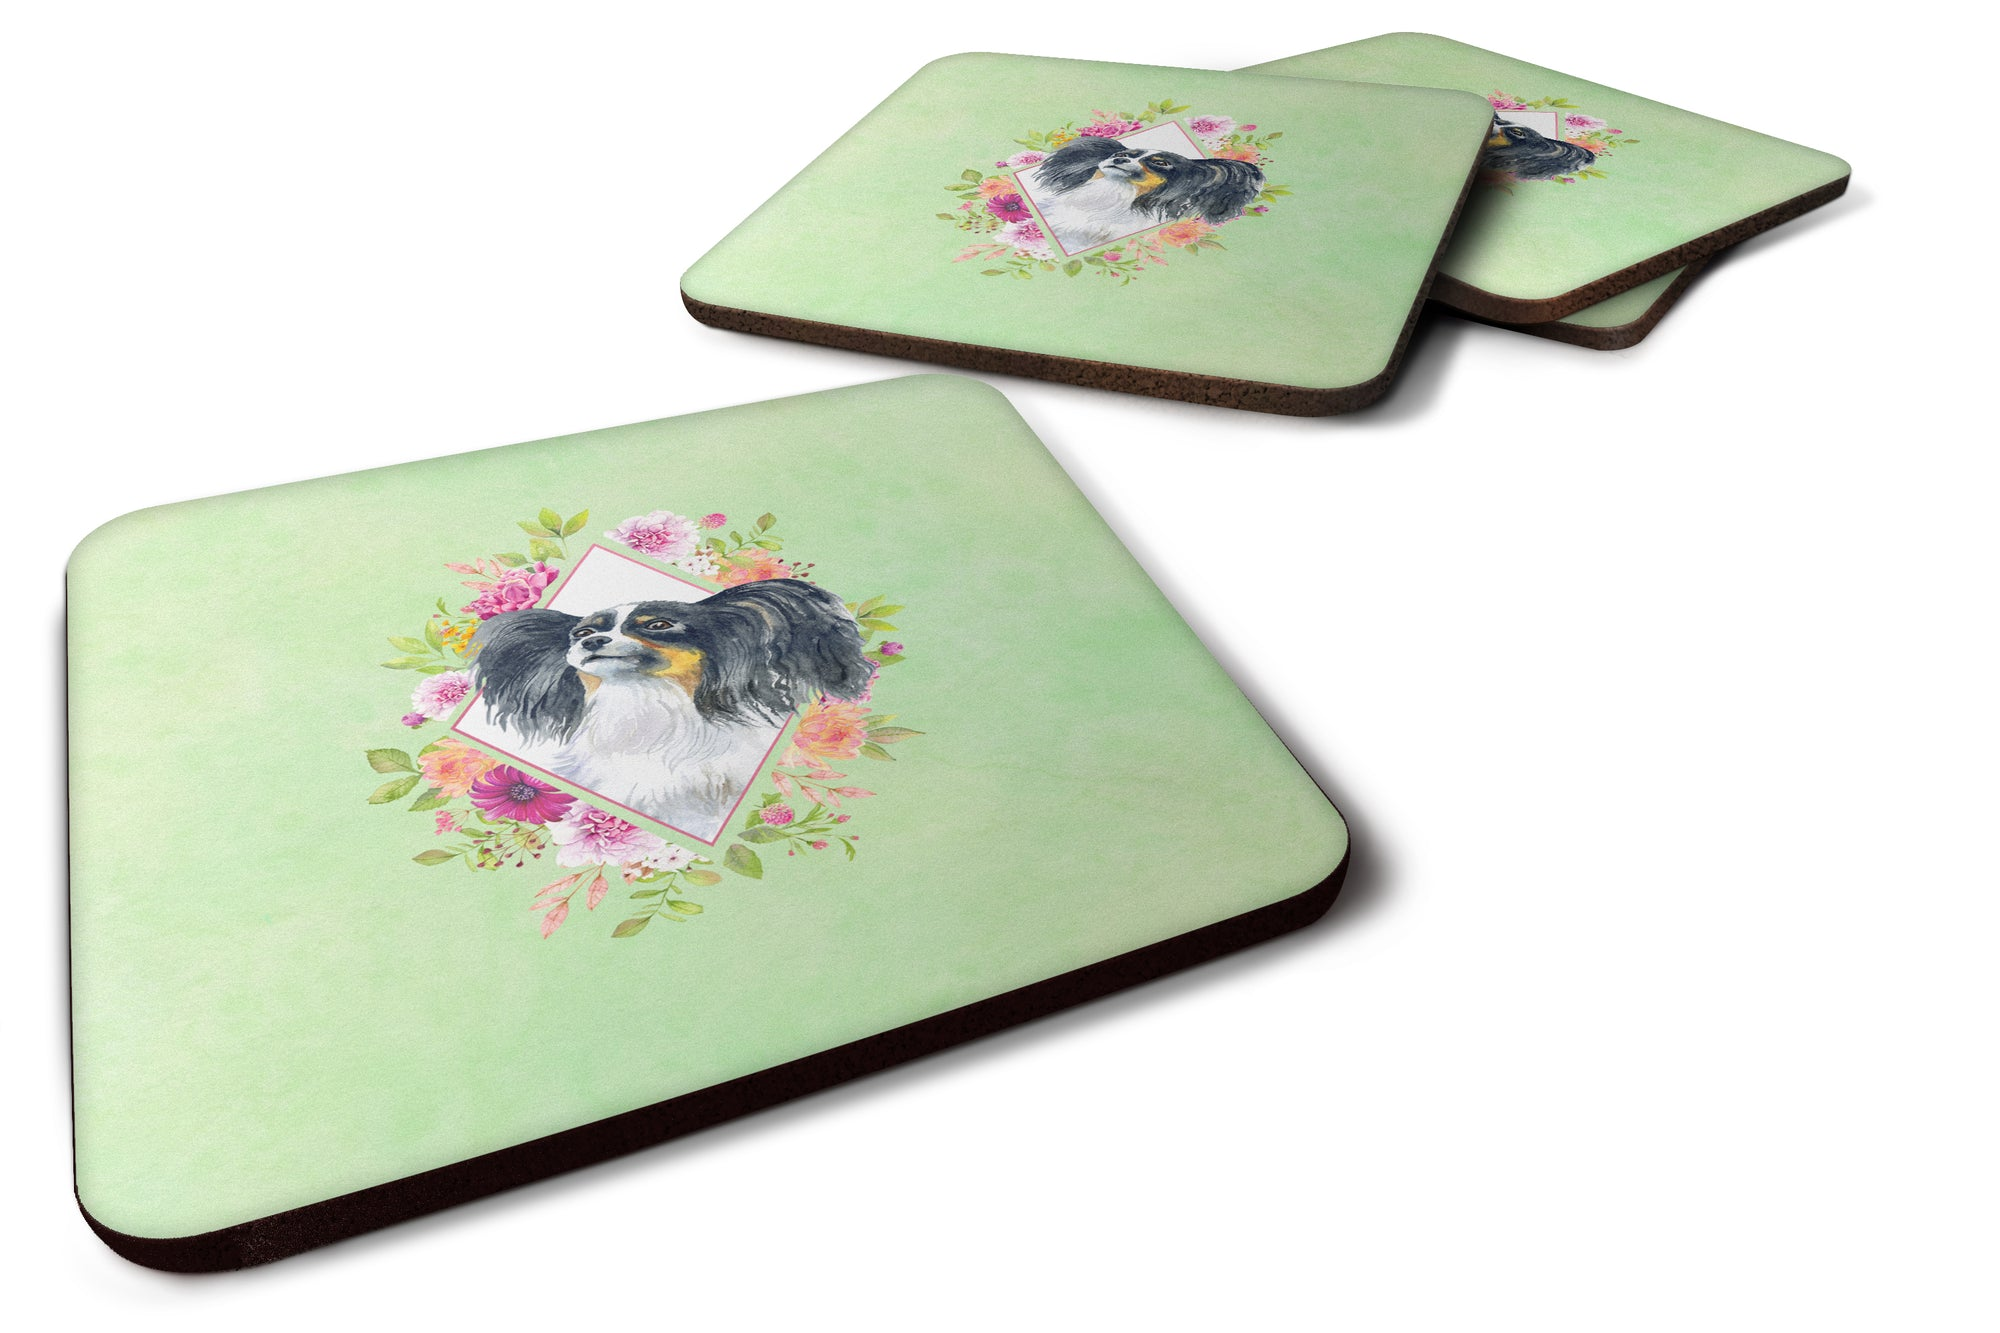 Set of 4 Papillon Green Flowers Foam Coasters Set of 4 CK4325FC by Caroline's Treasures